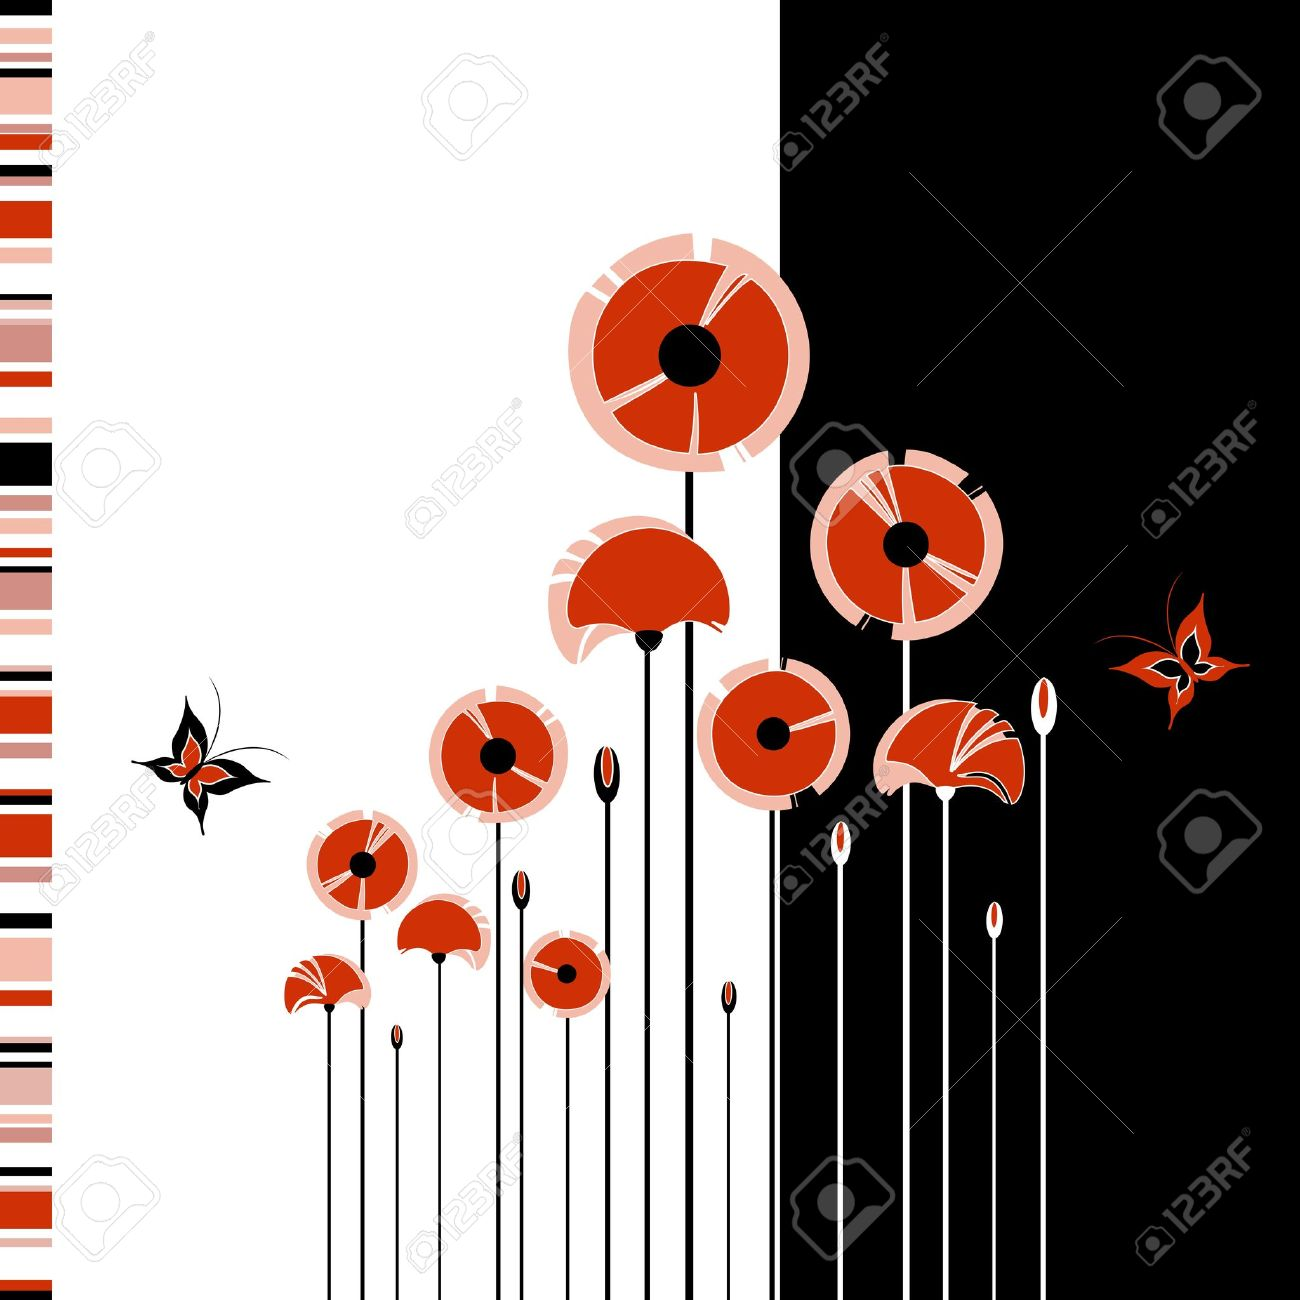 Abstract red poppy on black and white background Stock Vector - 10701095